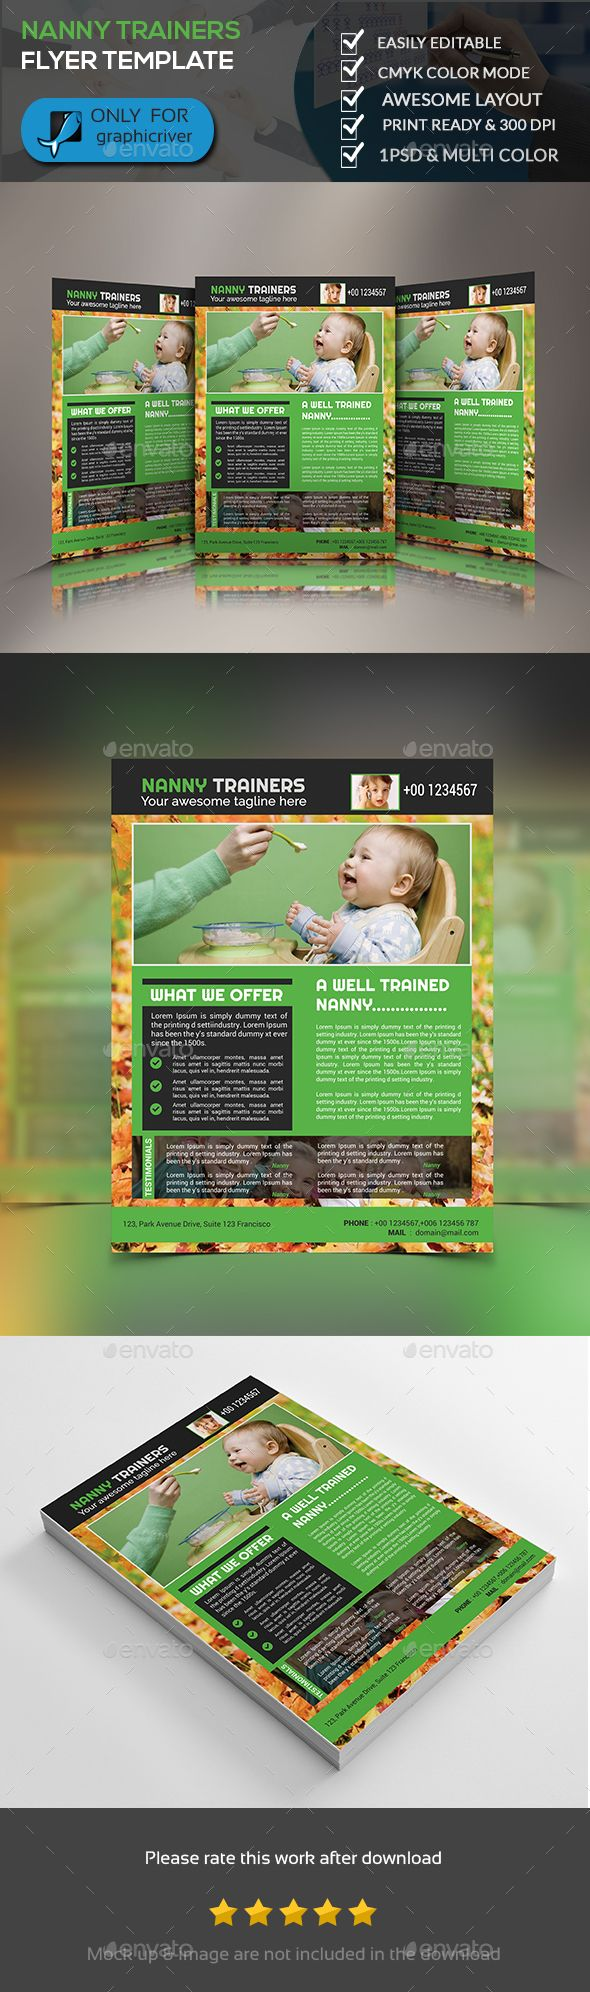 Healthcare-Advertising-Nanny-Trainer-Flyer-Template-Flyers-Print-Templates Healthcare Advertising : Nanny Trainer Flyer Template - Flyers Print Templates